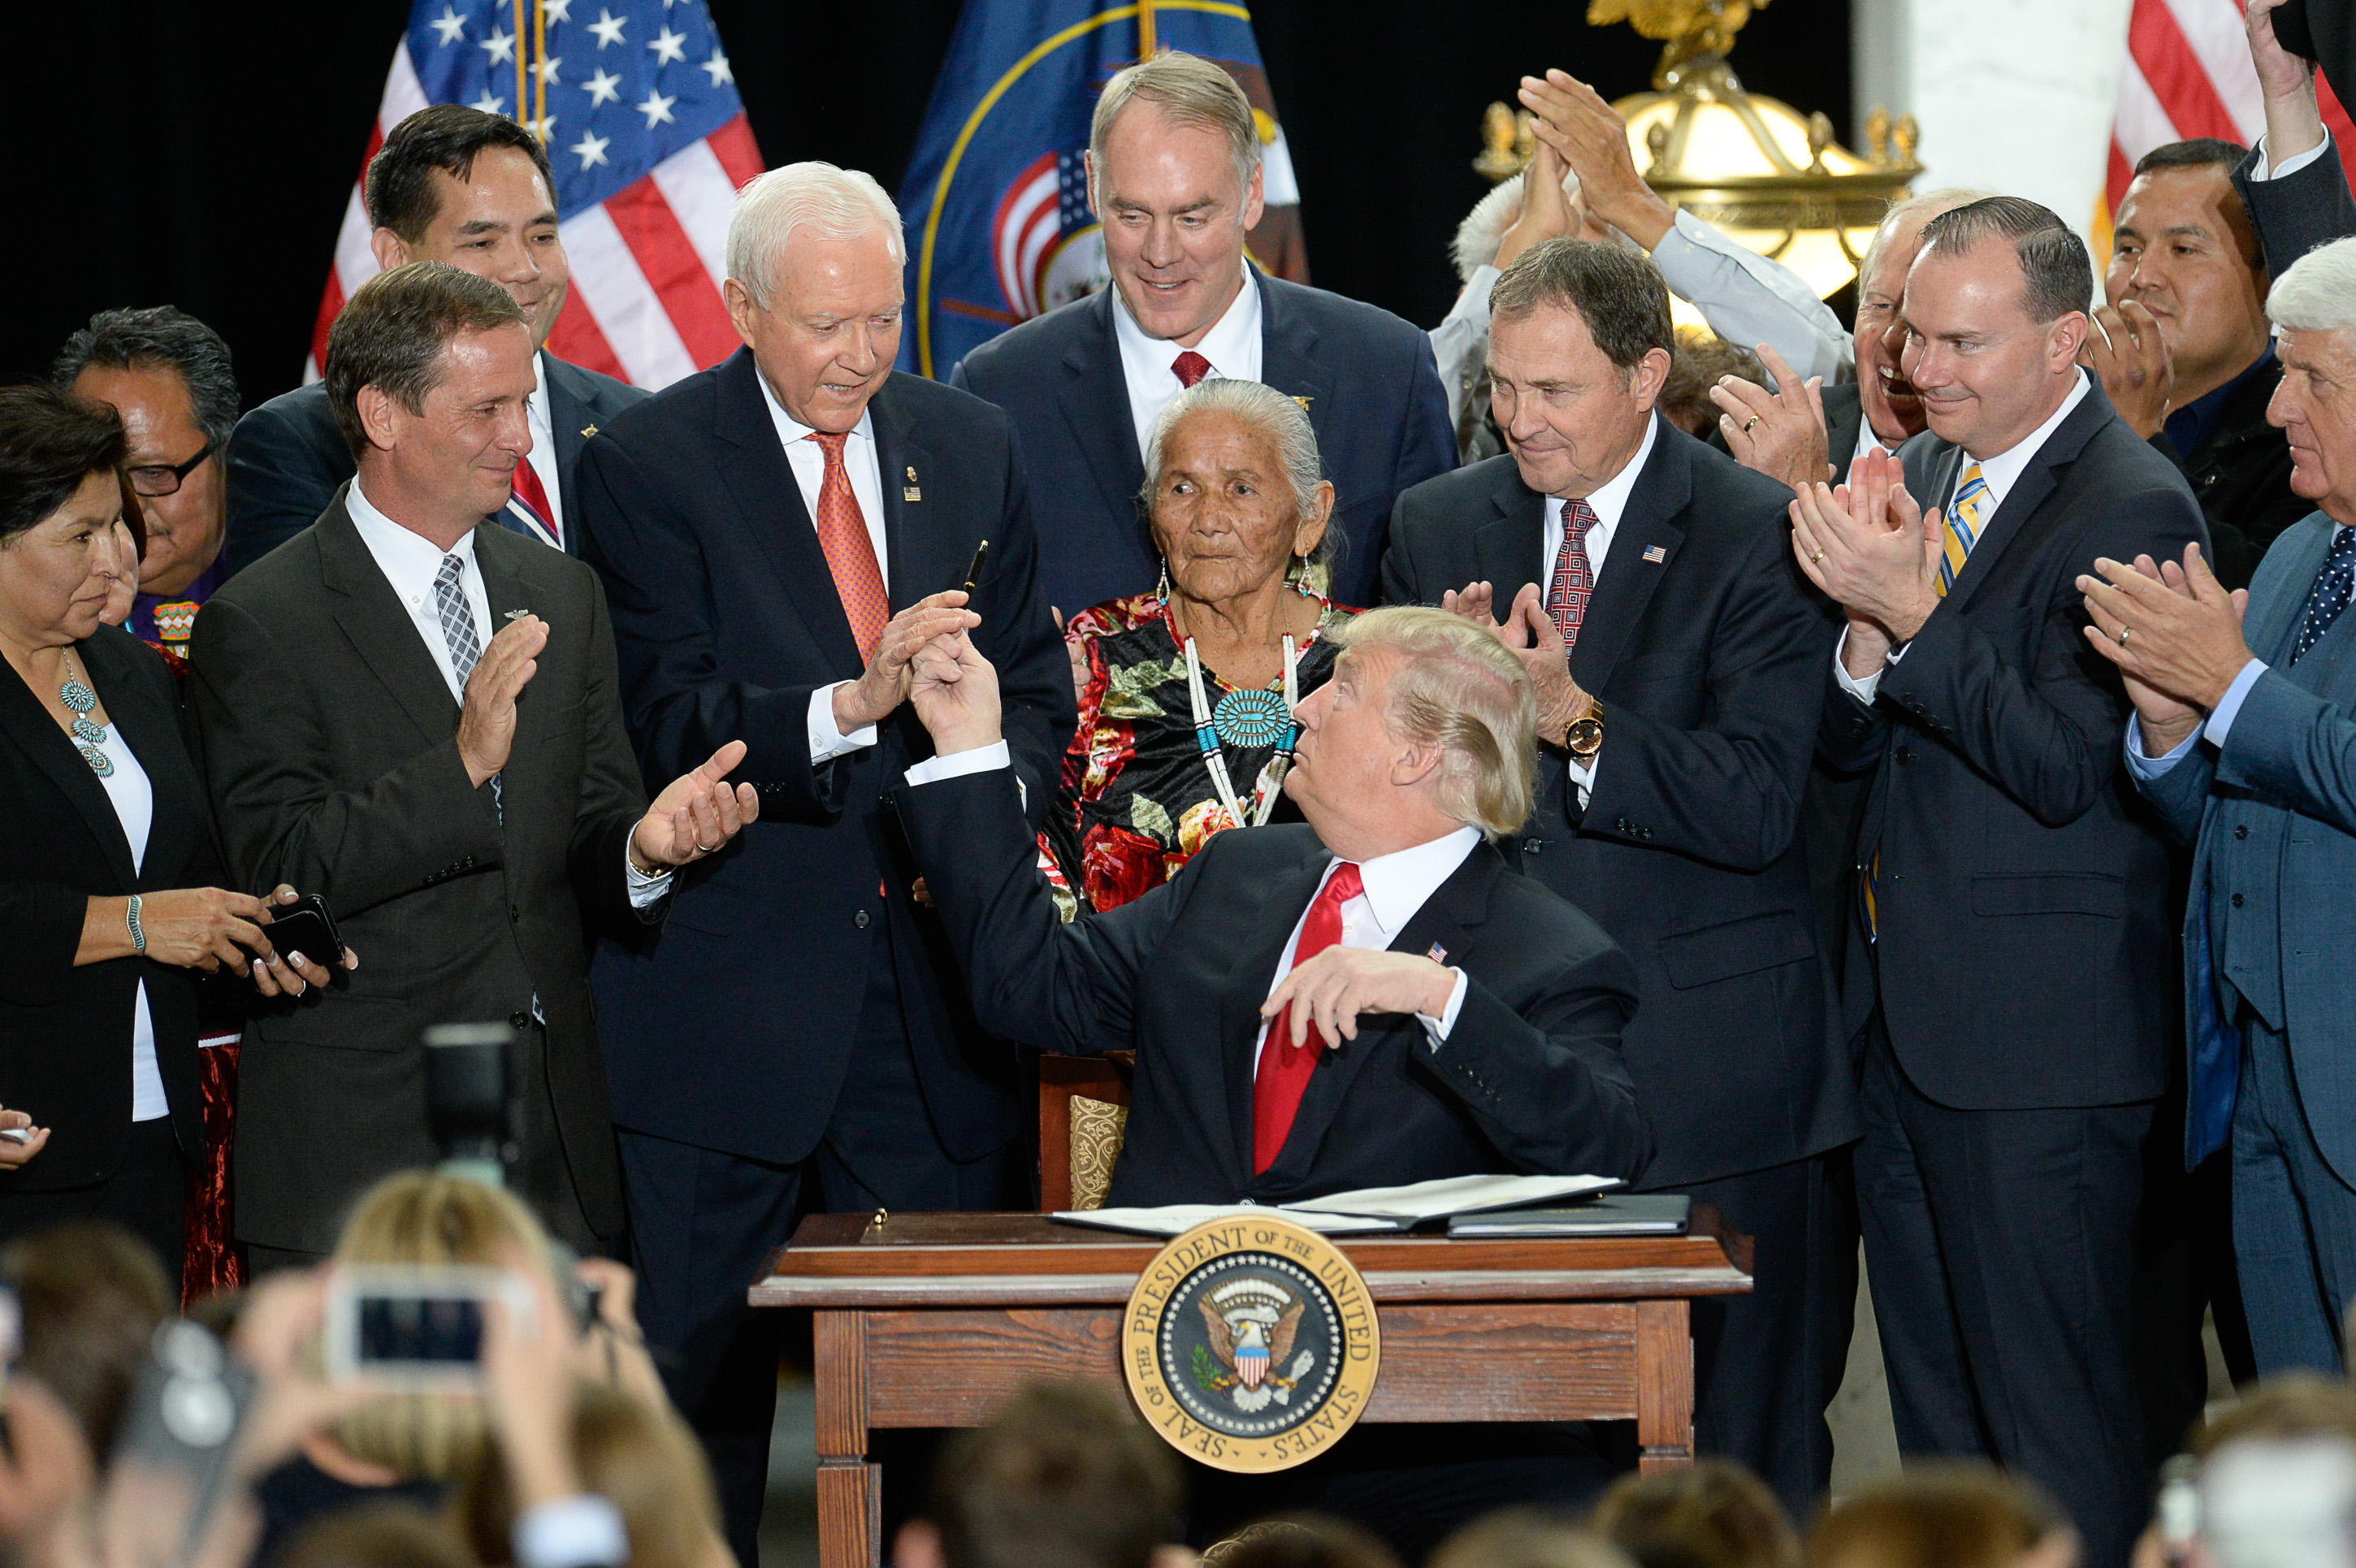 (Francisco Kjolseth  |  Tribune file photo)  U.S. President Donald Trump, surrounded by Utah representatives looks at Sen. Orrin Hatch to give him the pen used to signs a presidential proclamation to shrink Bears Ears and Grand Staircase-Escalante national monuments at the Utah Capitol on Monday, Dec. 4, 2017.